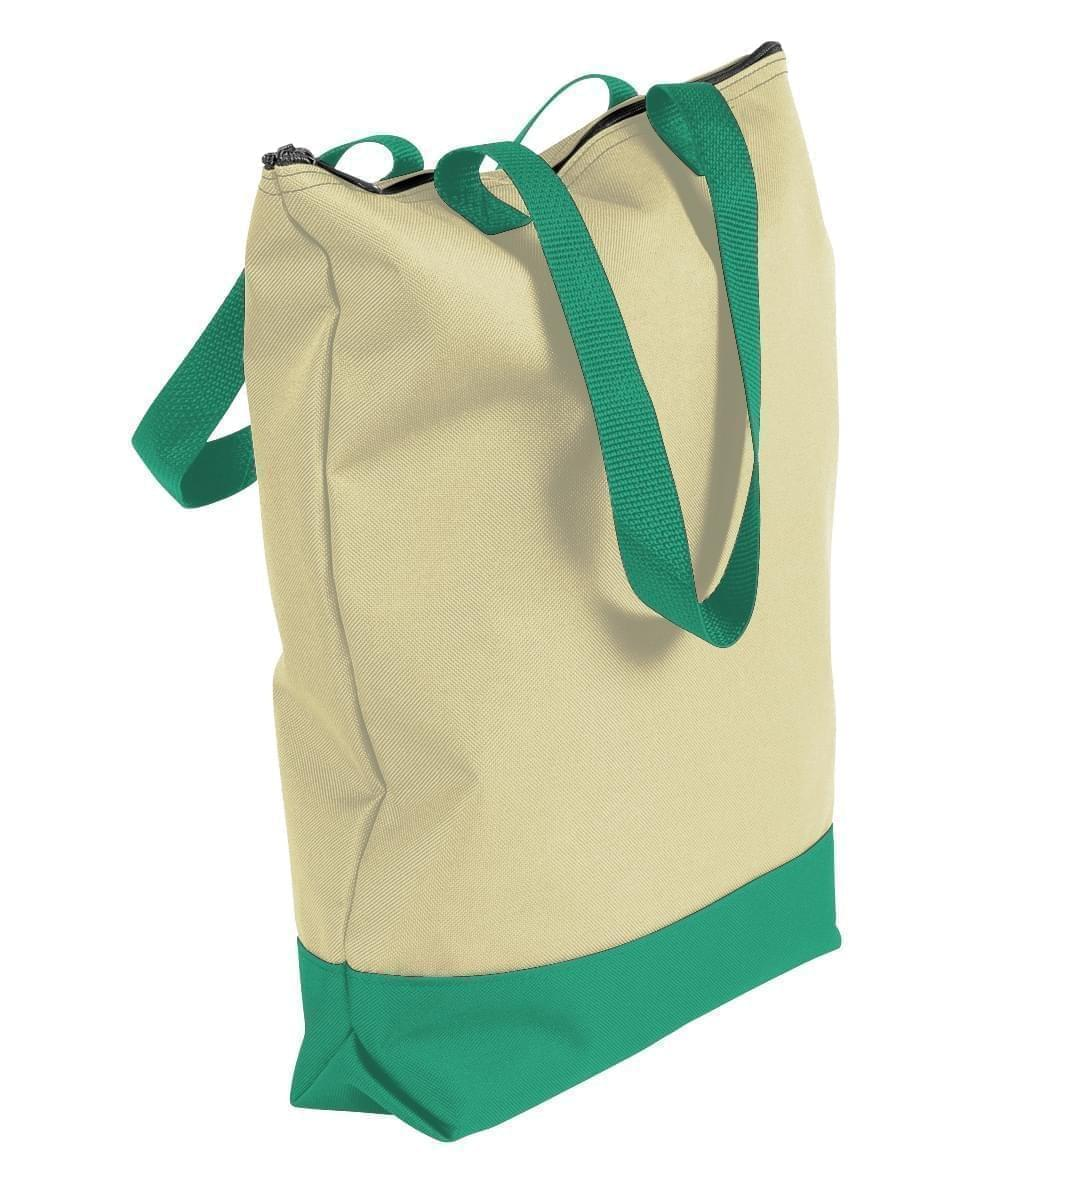 USA Made Canvas Portfolio Tote Bags, Natural-Kelly Green, 1AAMX1UAKW